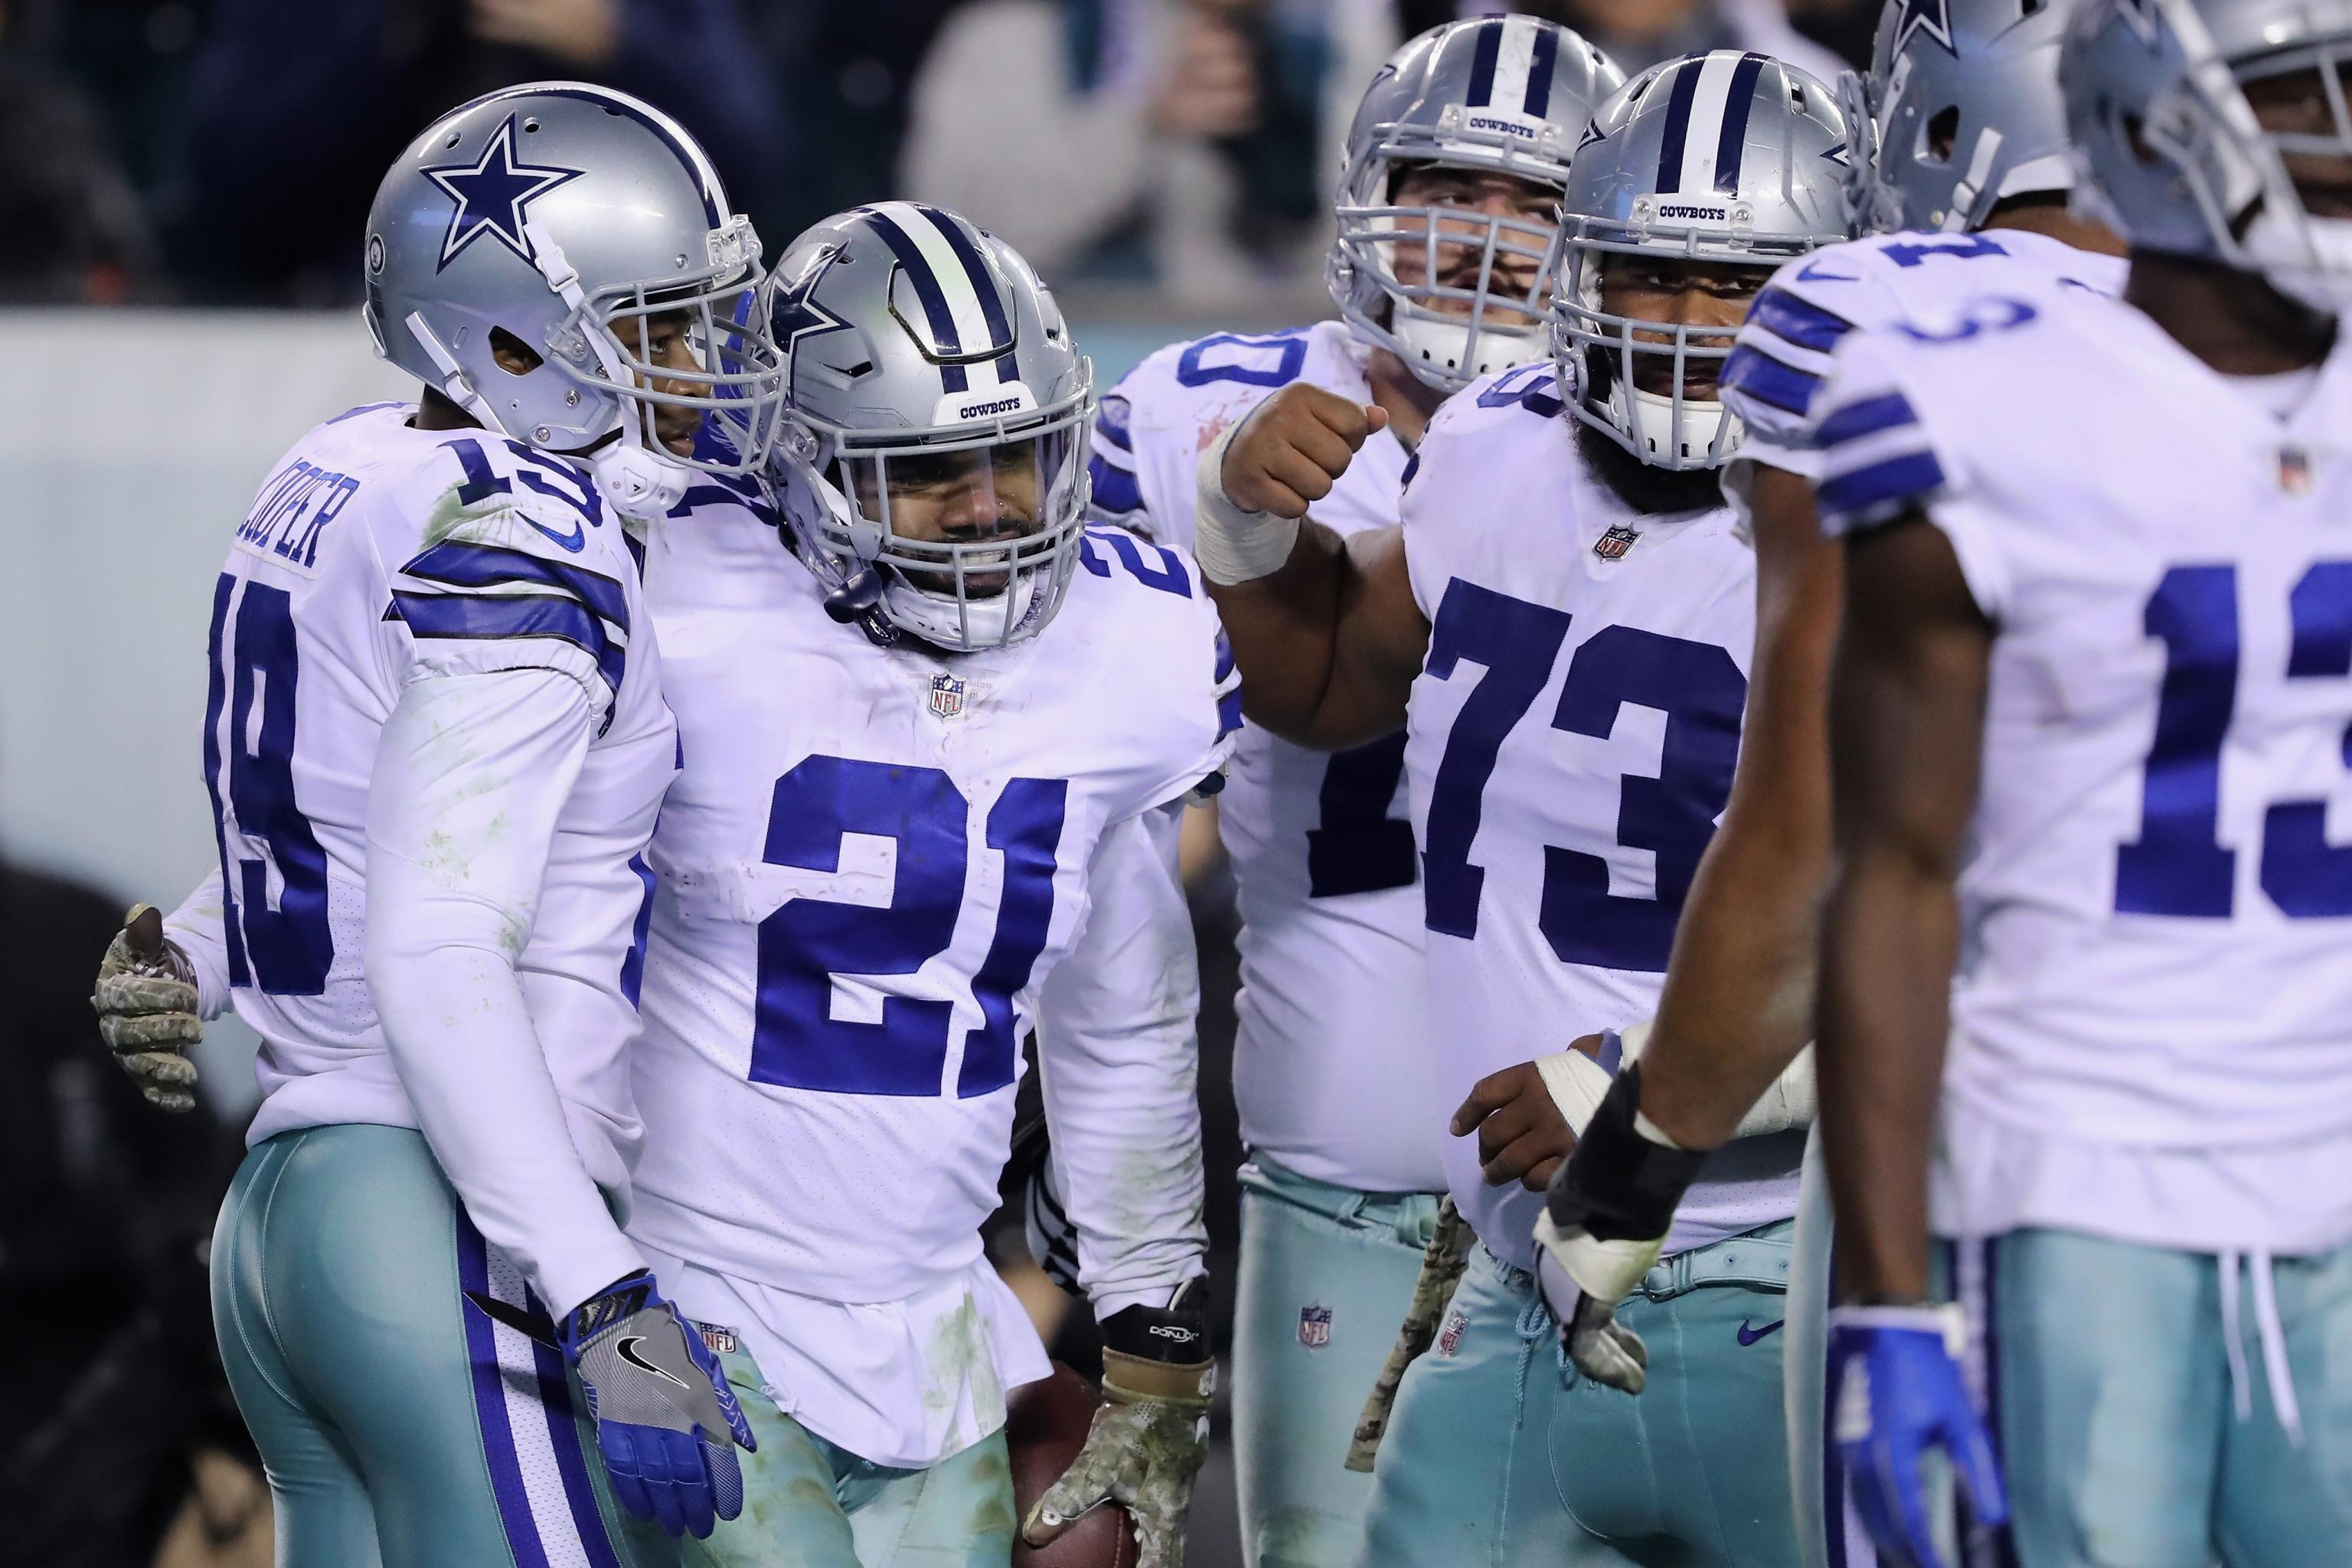 2019 Dallas Cowboys Schedule: Full Listing of Dates, Times